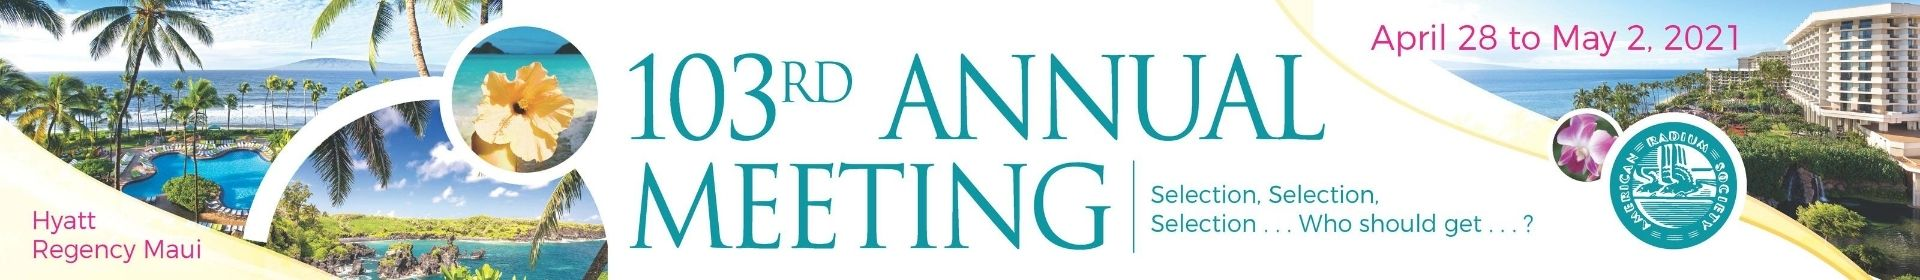 2021 Annual Meeting Event Banner